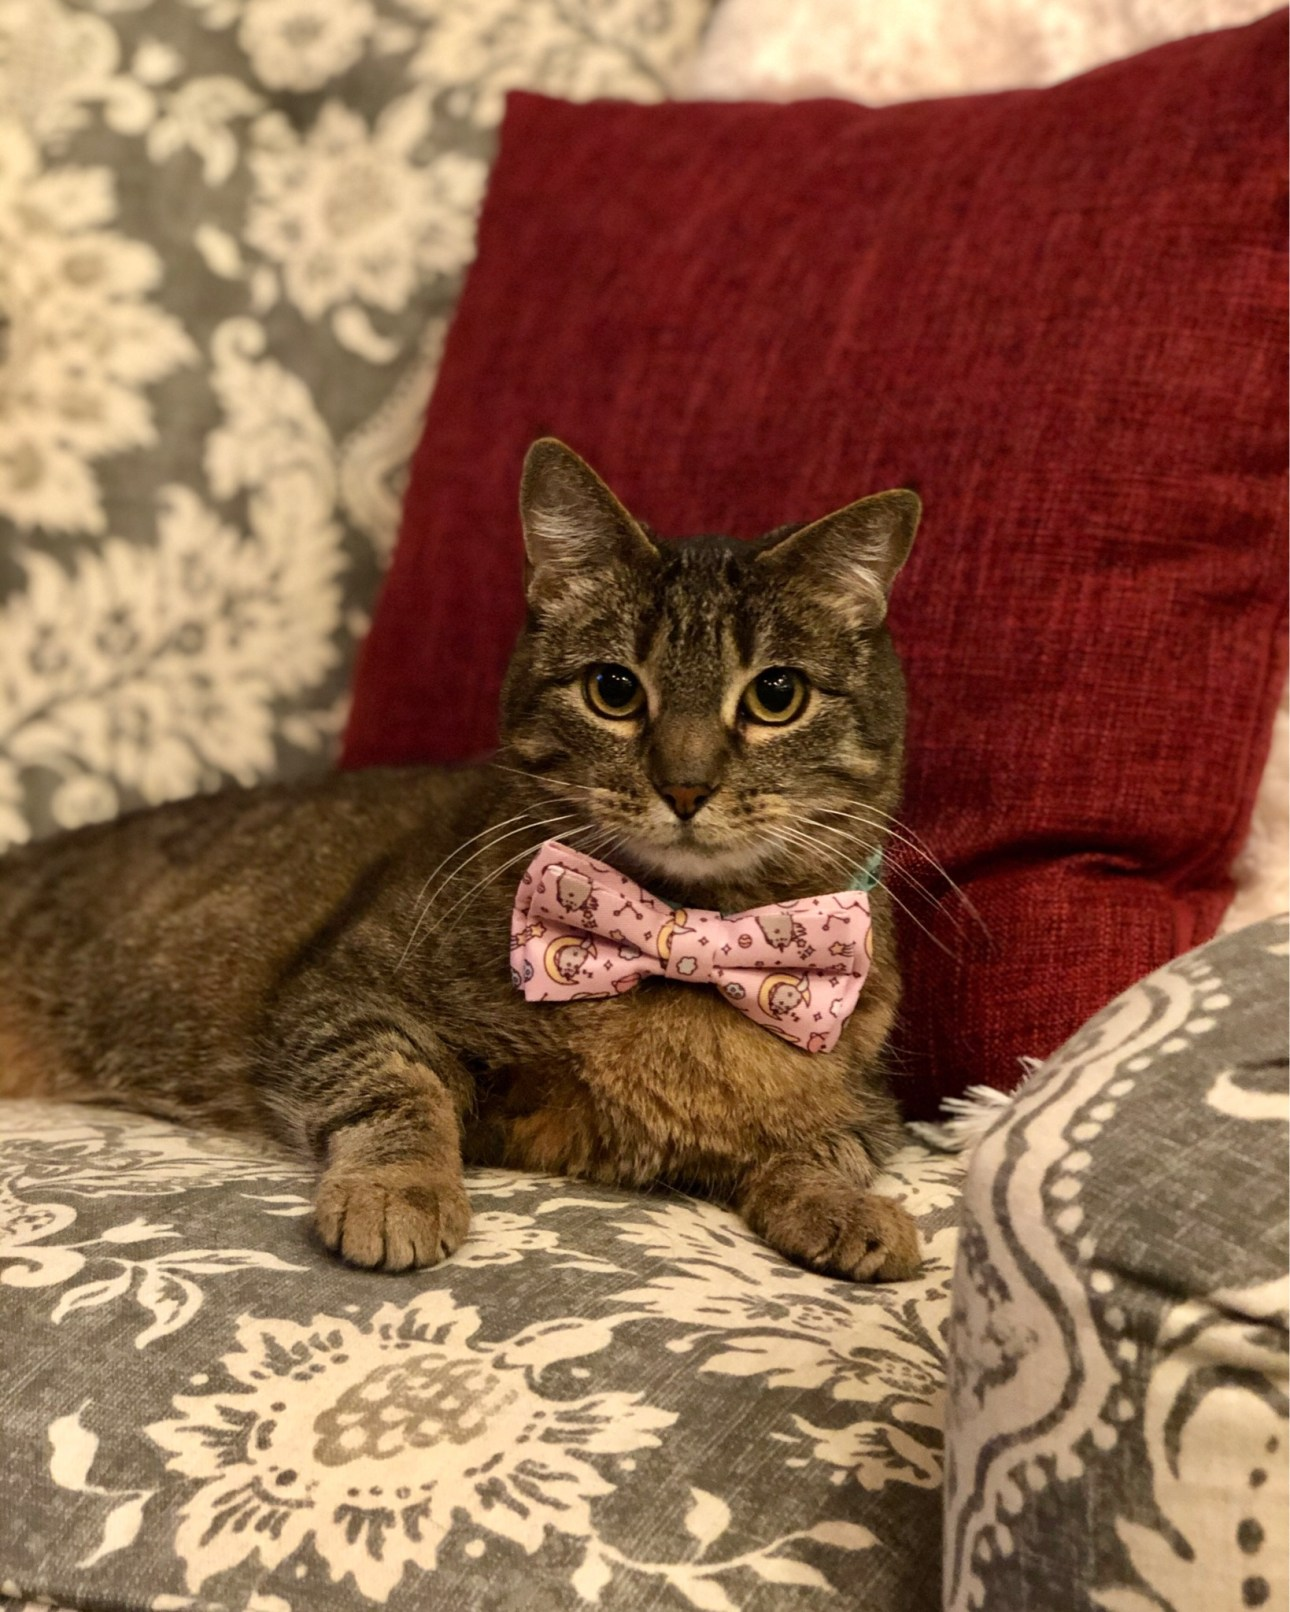 Miss Kitty in her bow tie!